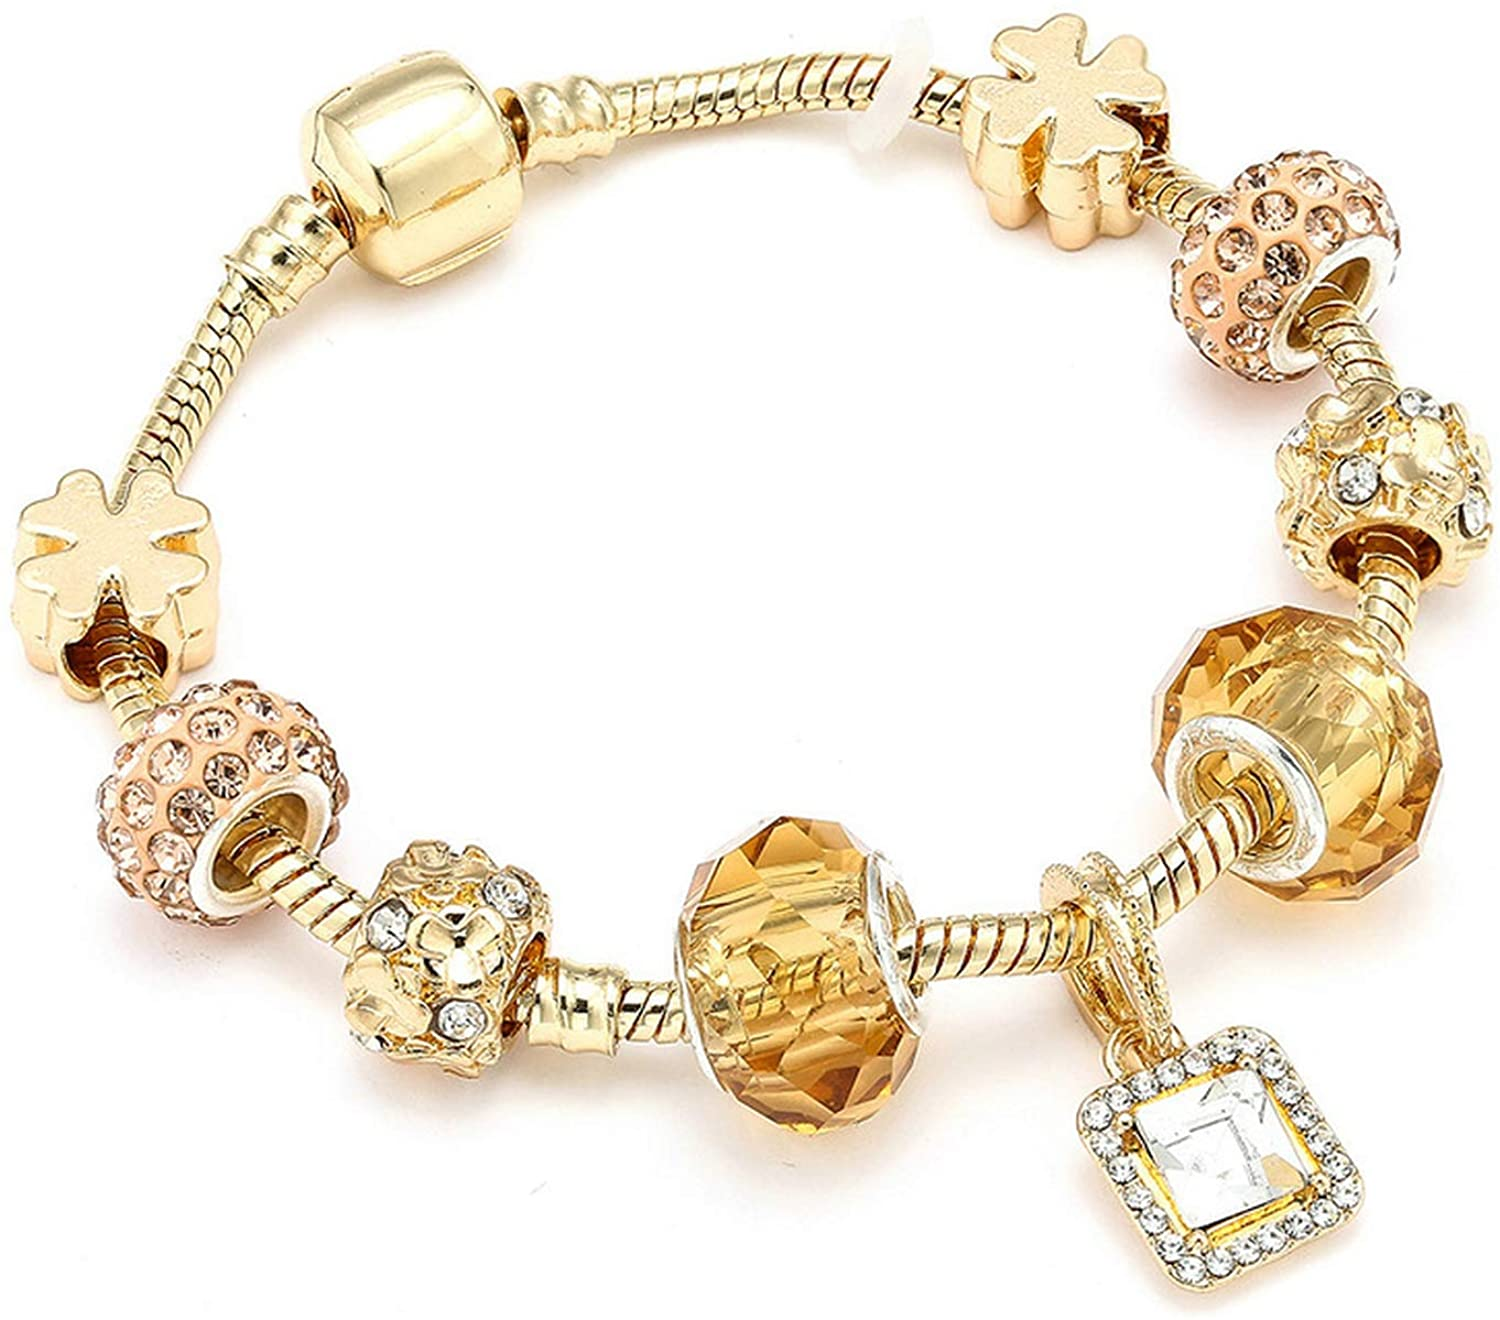 Luxury Crystal Heart Gold Color Charm Bracelet for Girl Murano Glass Beads Brand Bracelet for Women DIY Jewelry Gift,Pure Gold Color,21cm